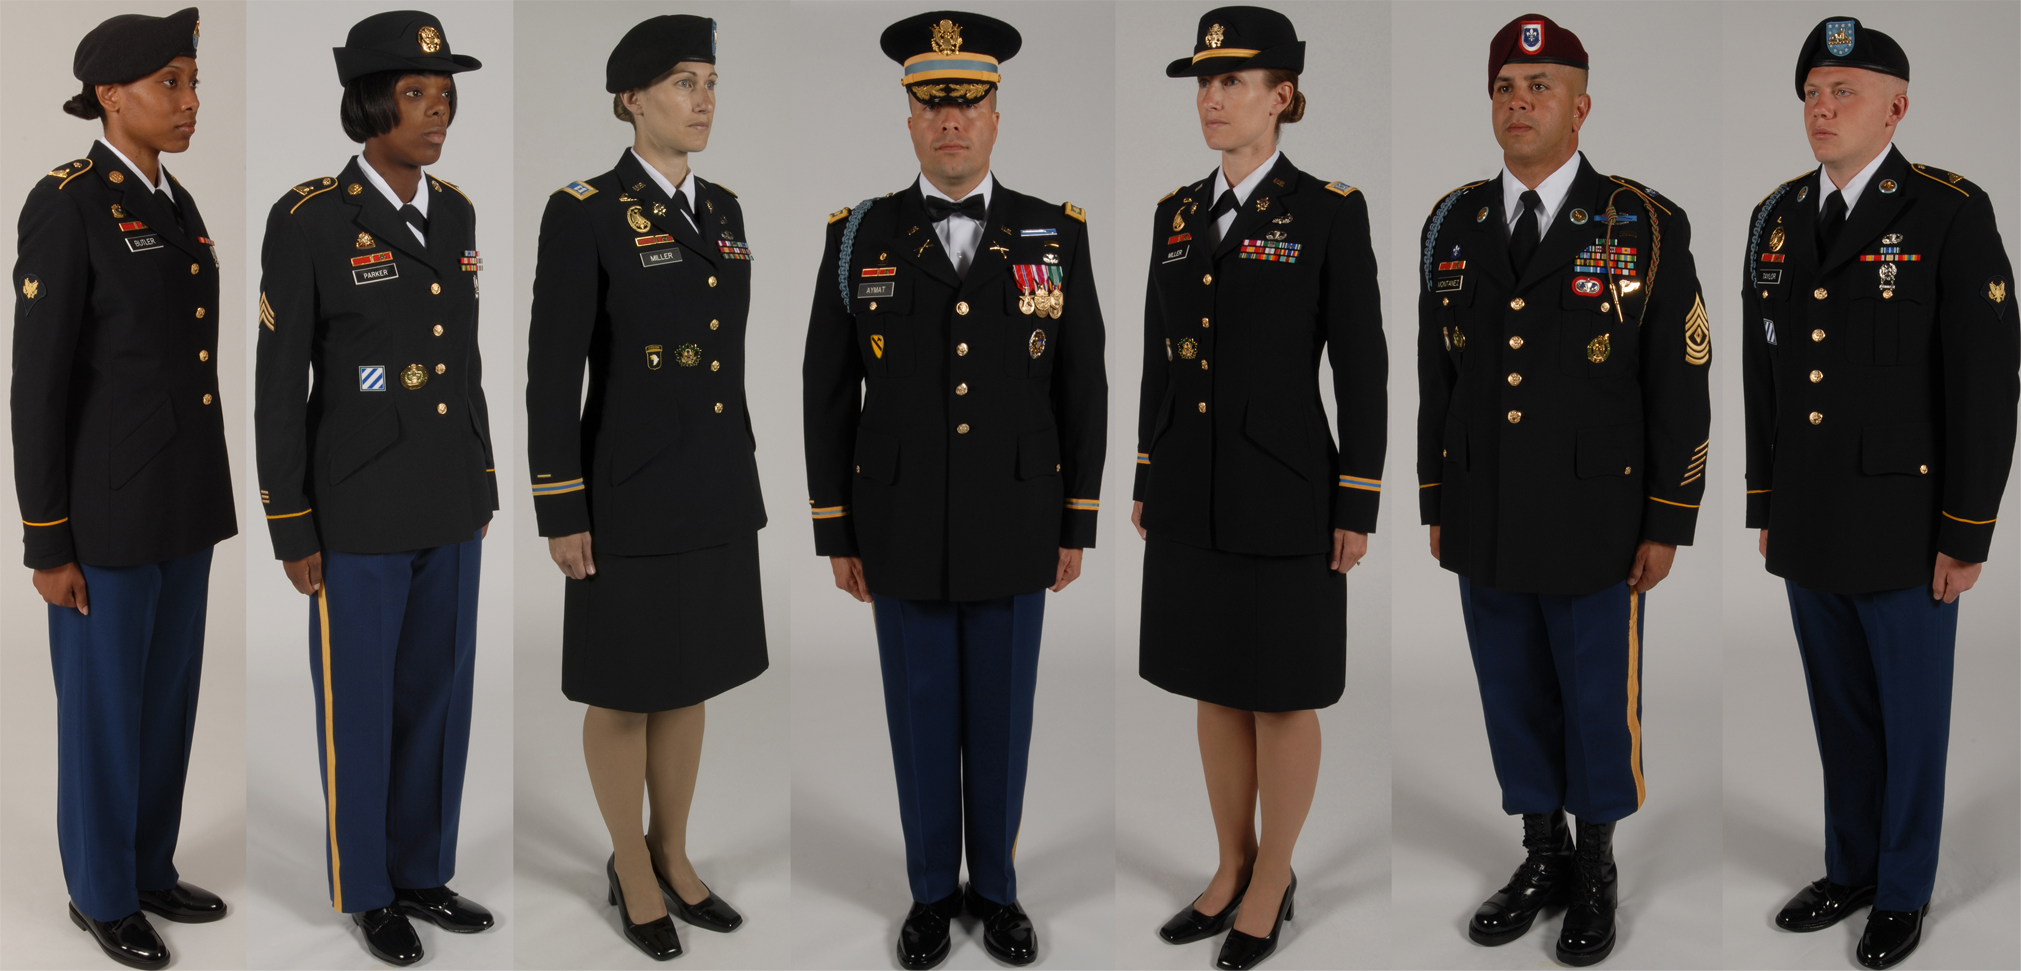 American Army Uniforms Hd Pictures 4 HD Wallpapers ...